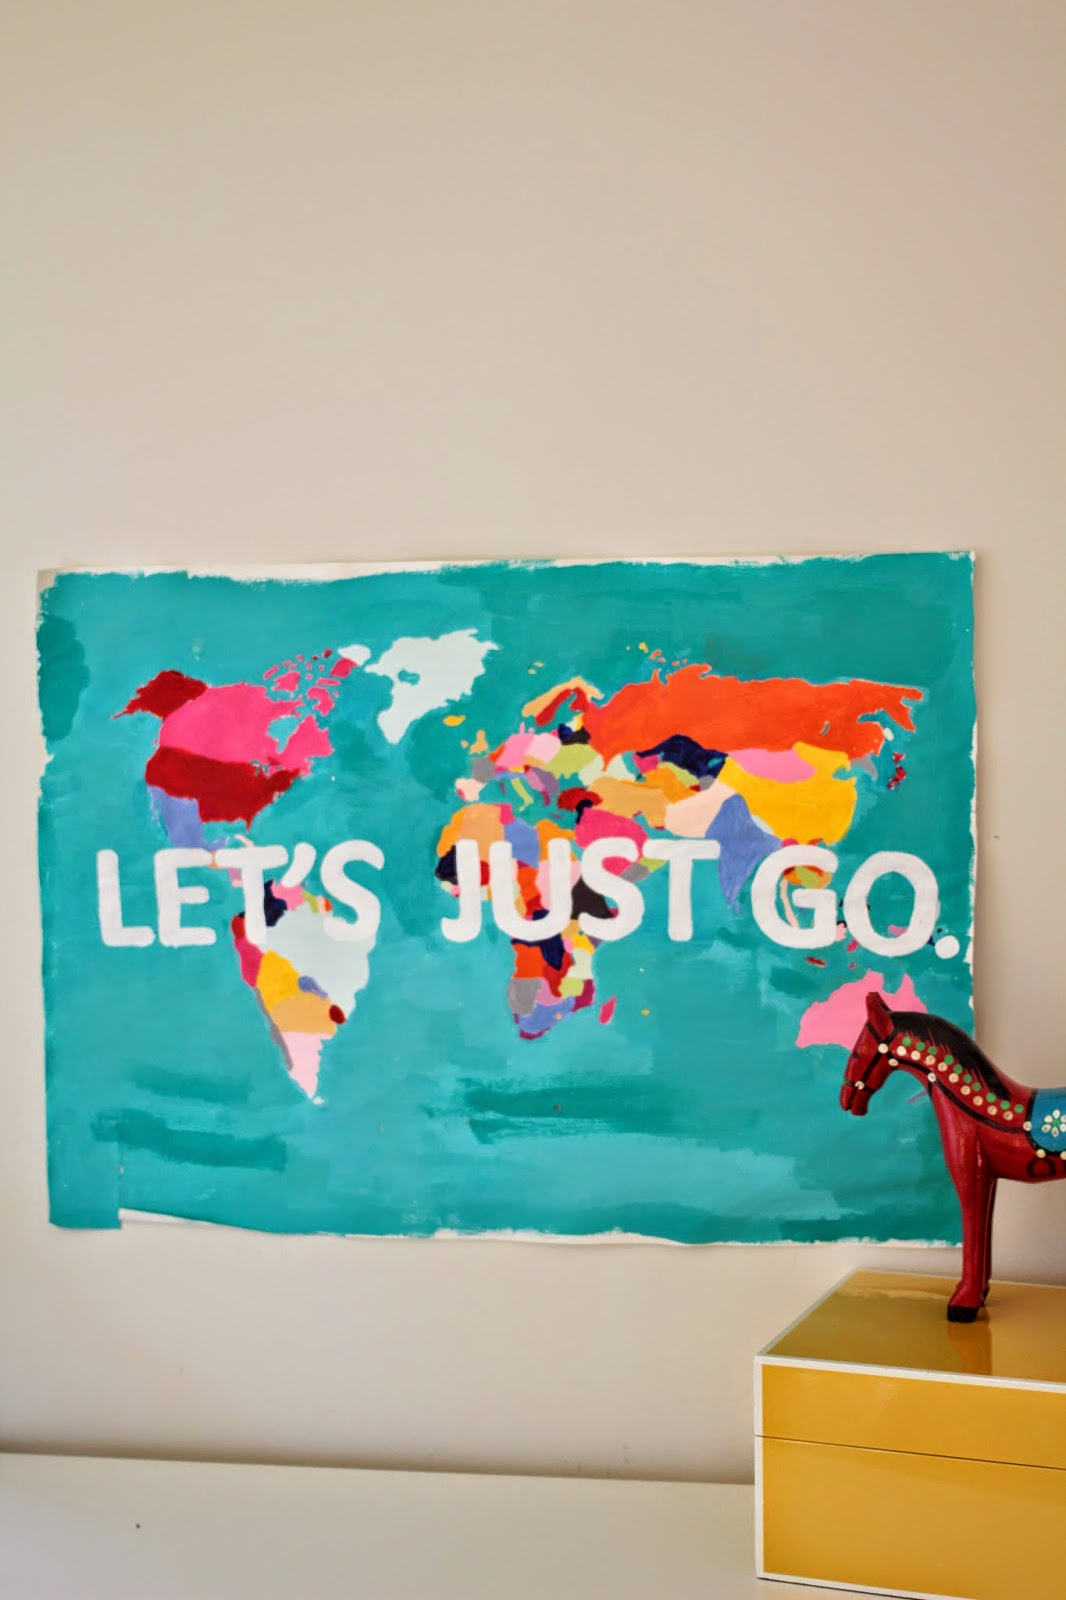 diy wall art, diy room decor, wall art tutorial, diy tutorial, diy world map,